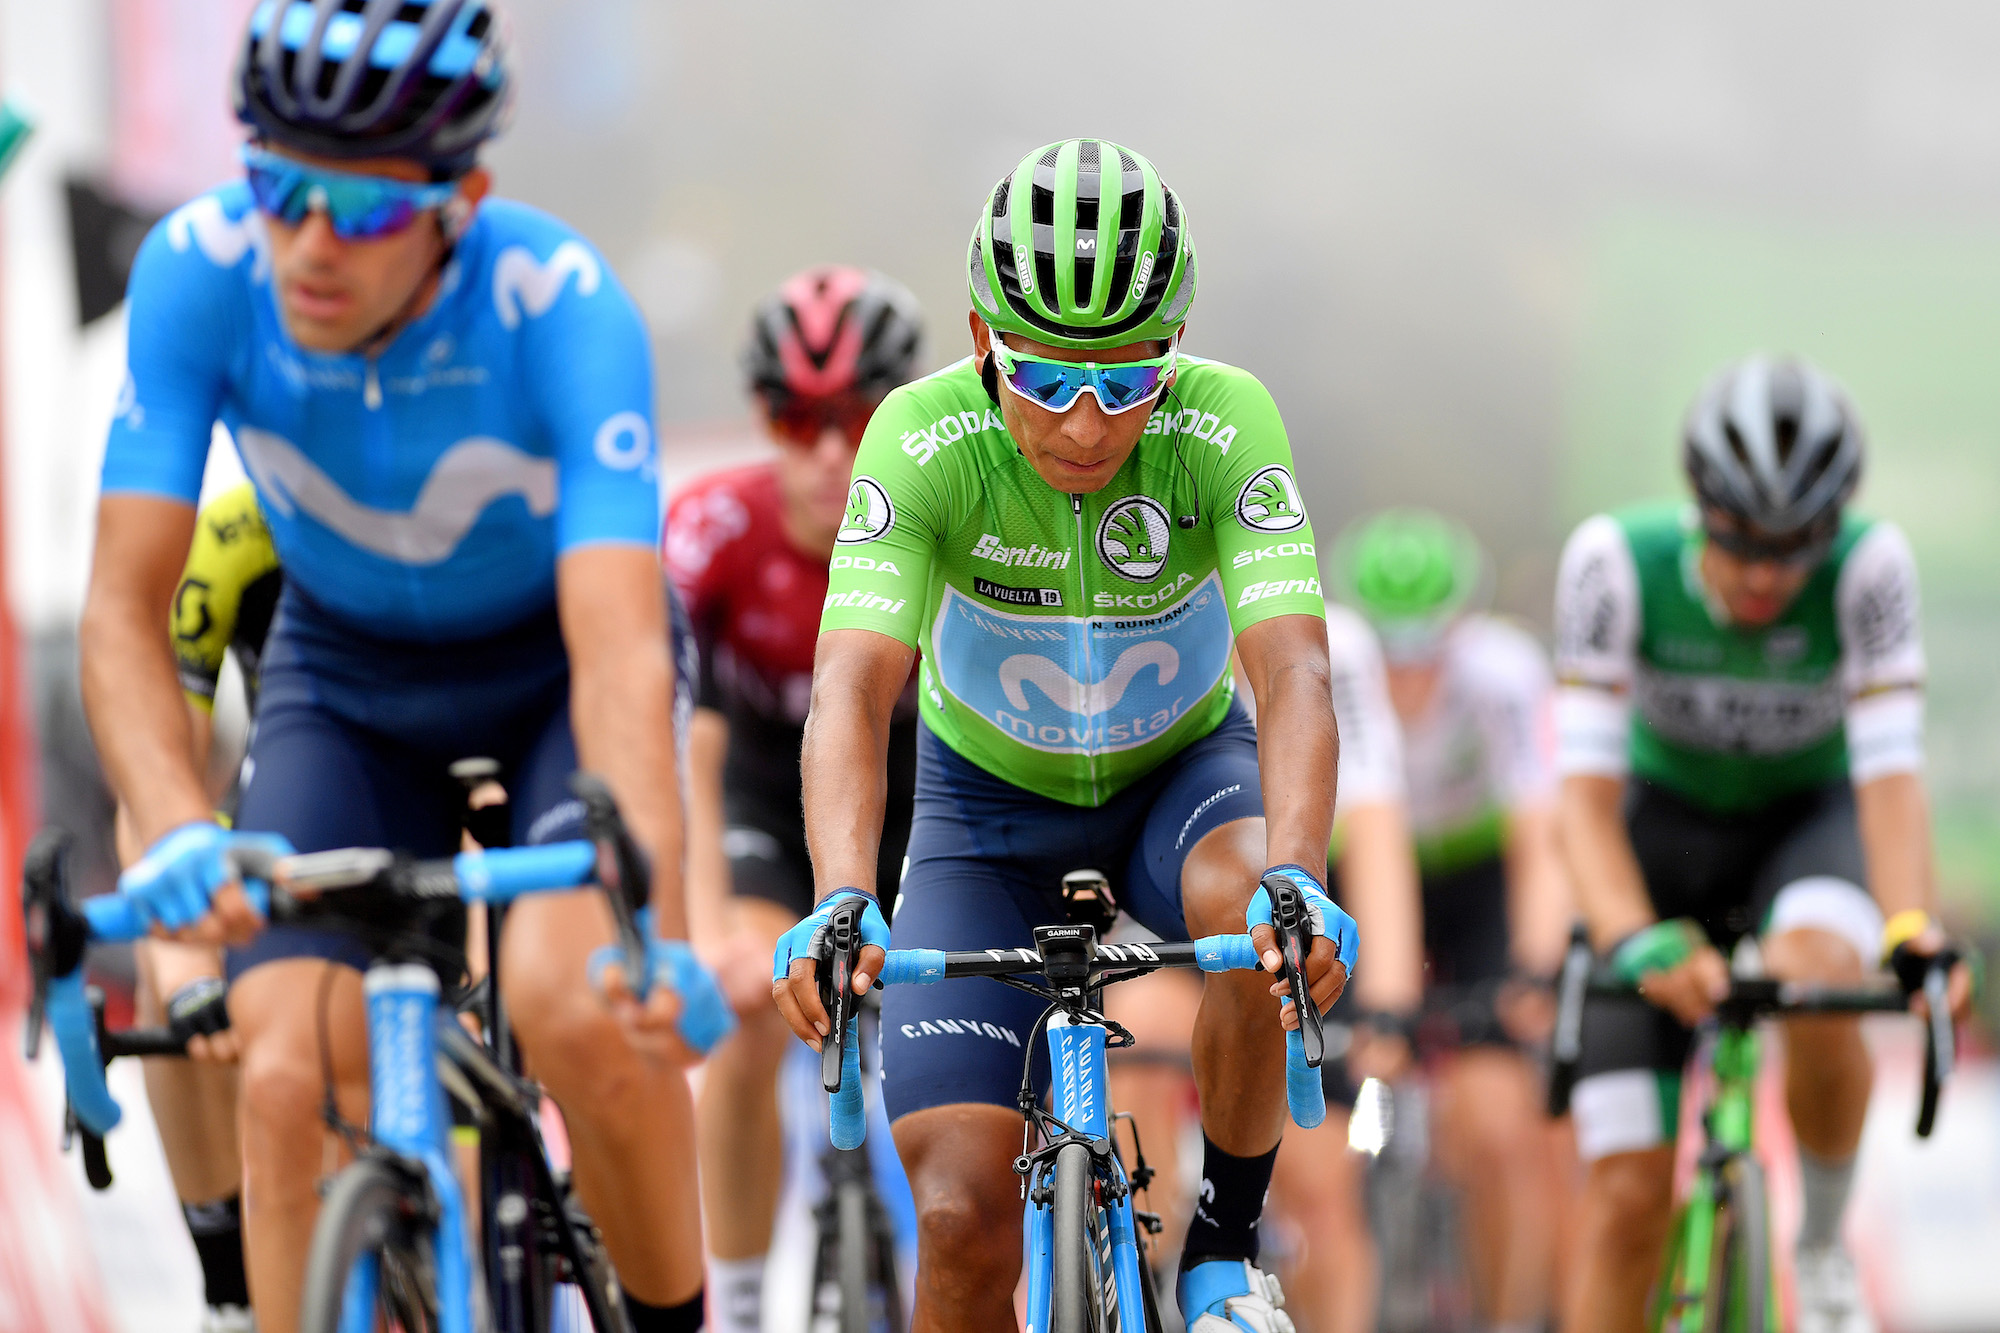 'Nairo Quintana wanted a team with new challenges and can still win Tour de France' says Arkéa-Samsic boss